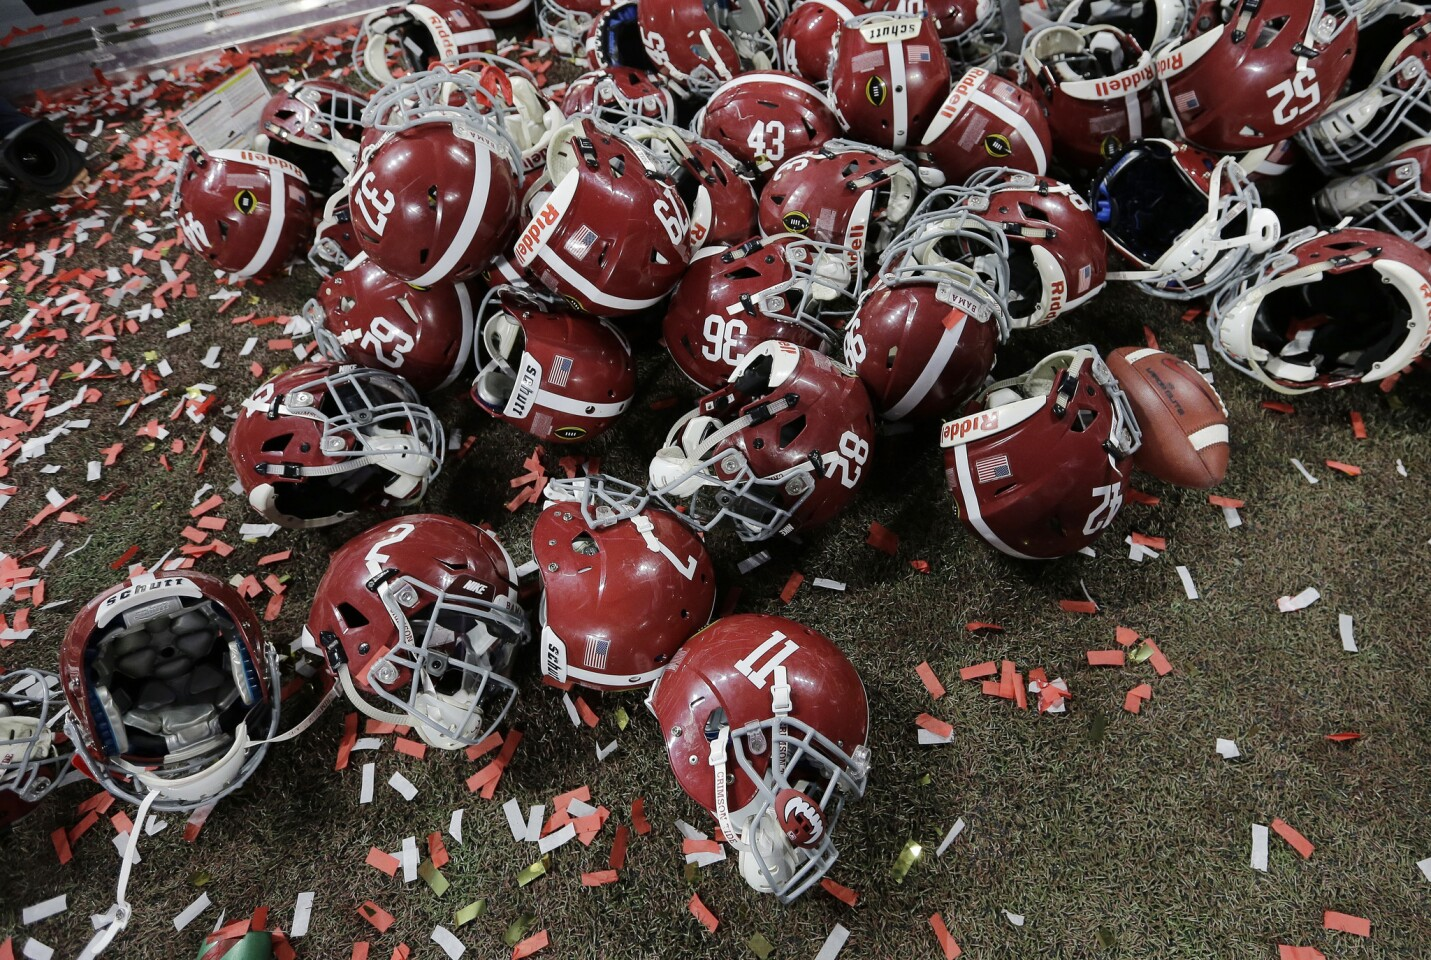 Alabama helmets lay with confetti after overtime.